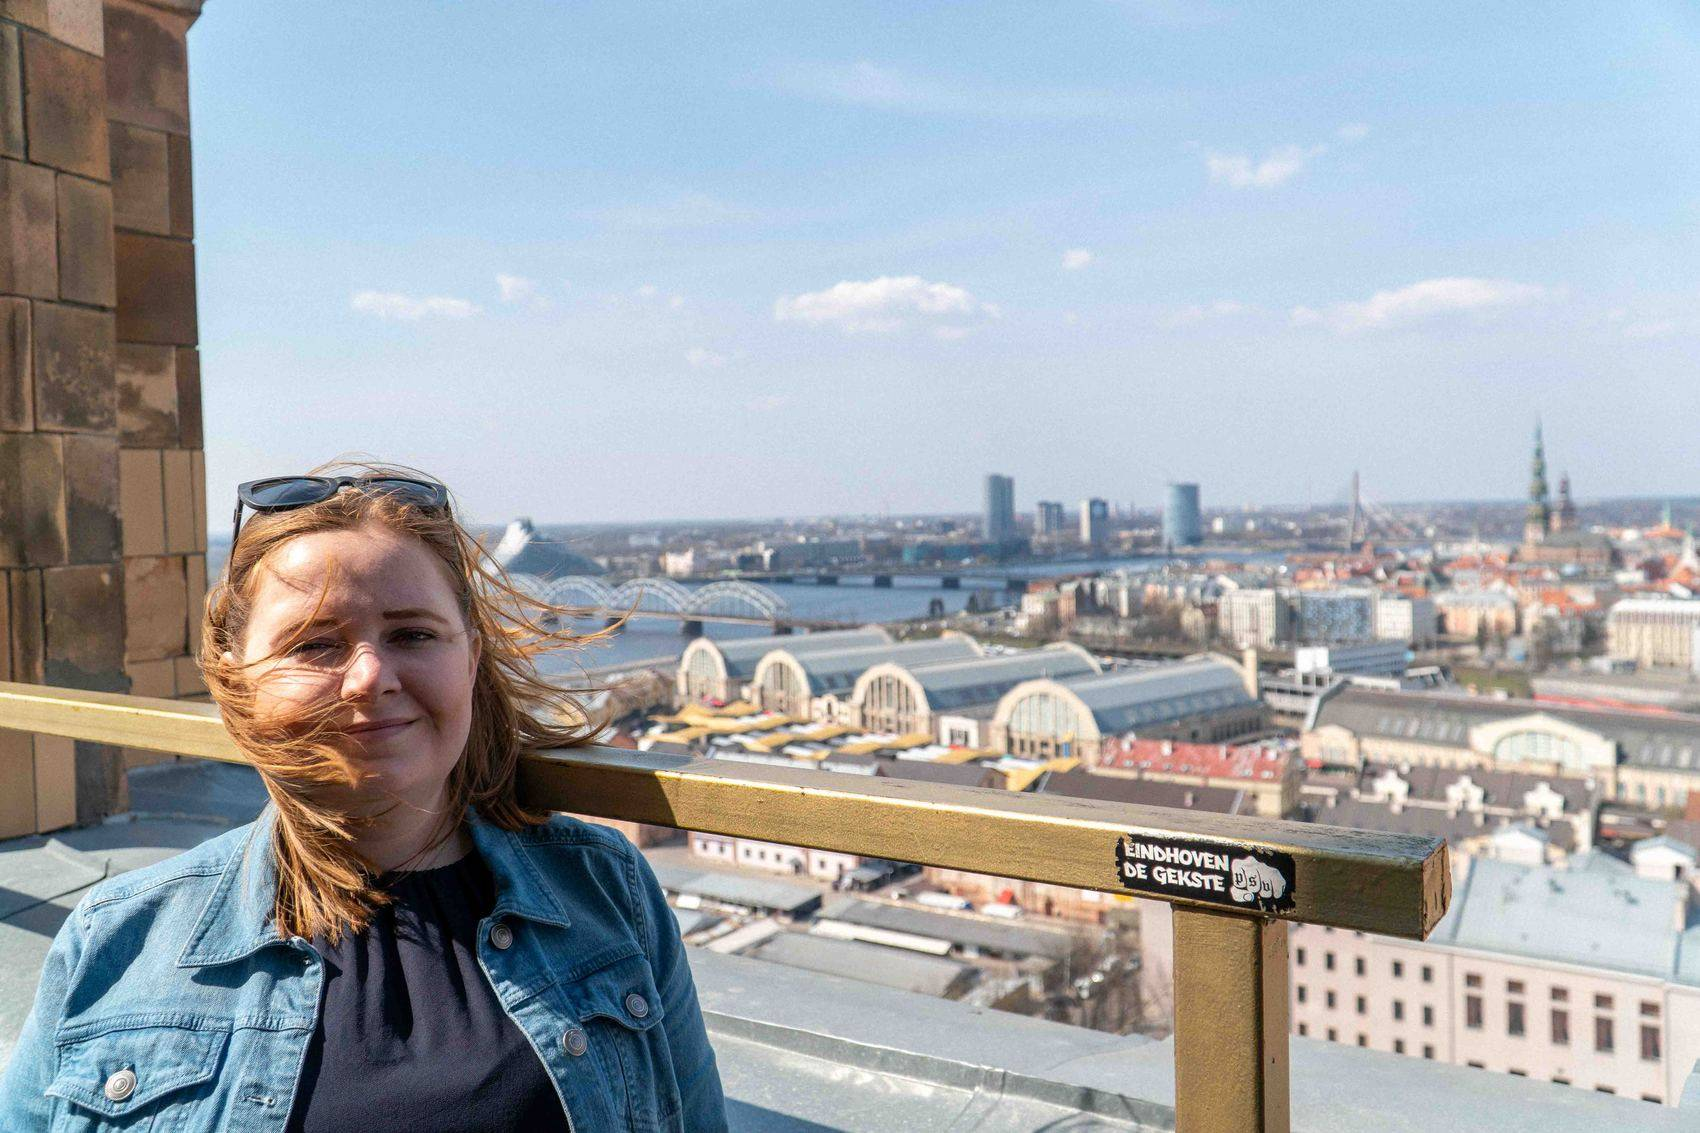 Kat-at-Latvian-Academy-of-Sciences-Panorama-Observation-Deck